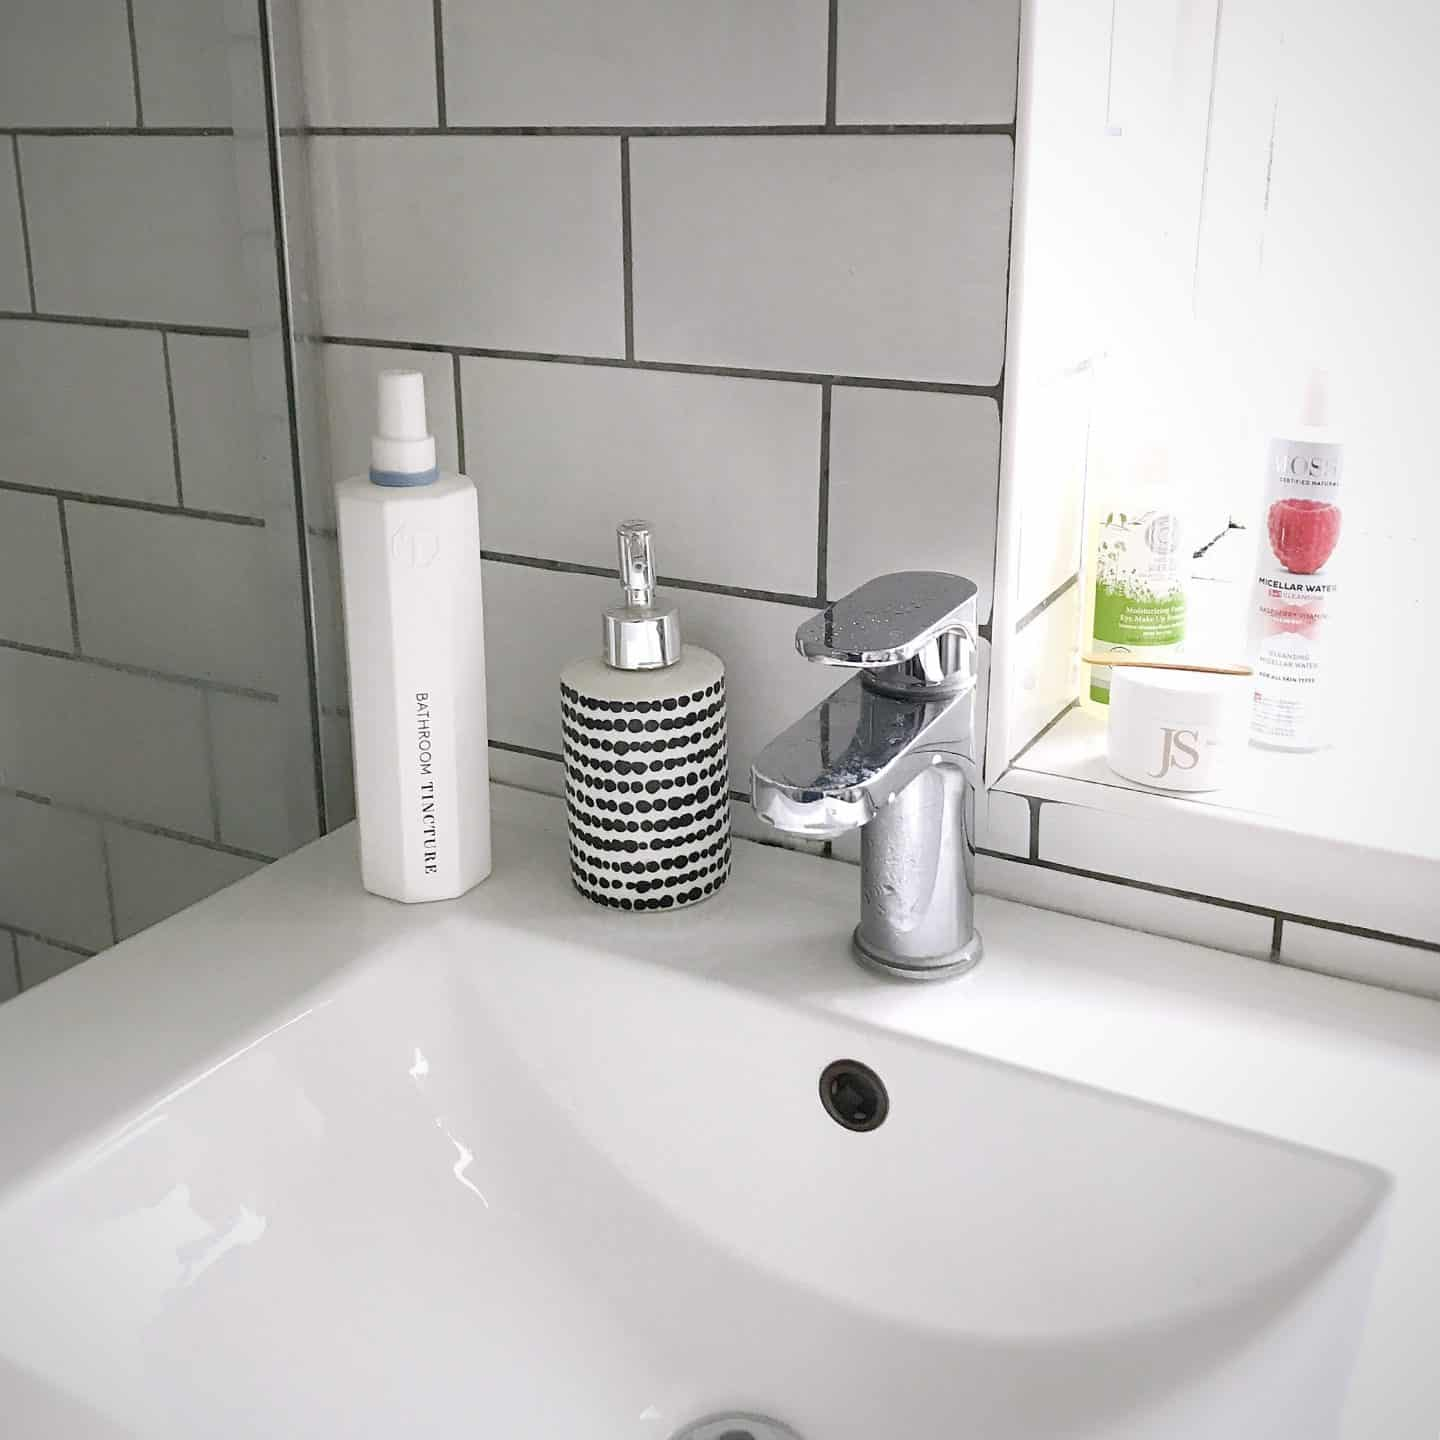 Tincture London eco-friendly cleaning spray for bathrooms in a monochrome bathroom